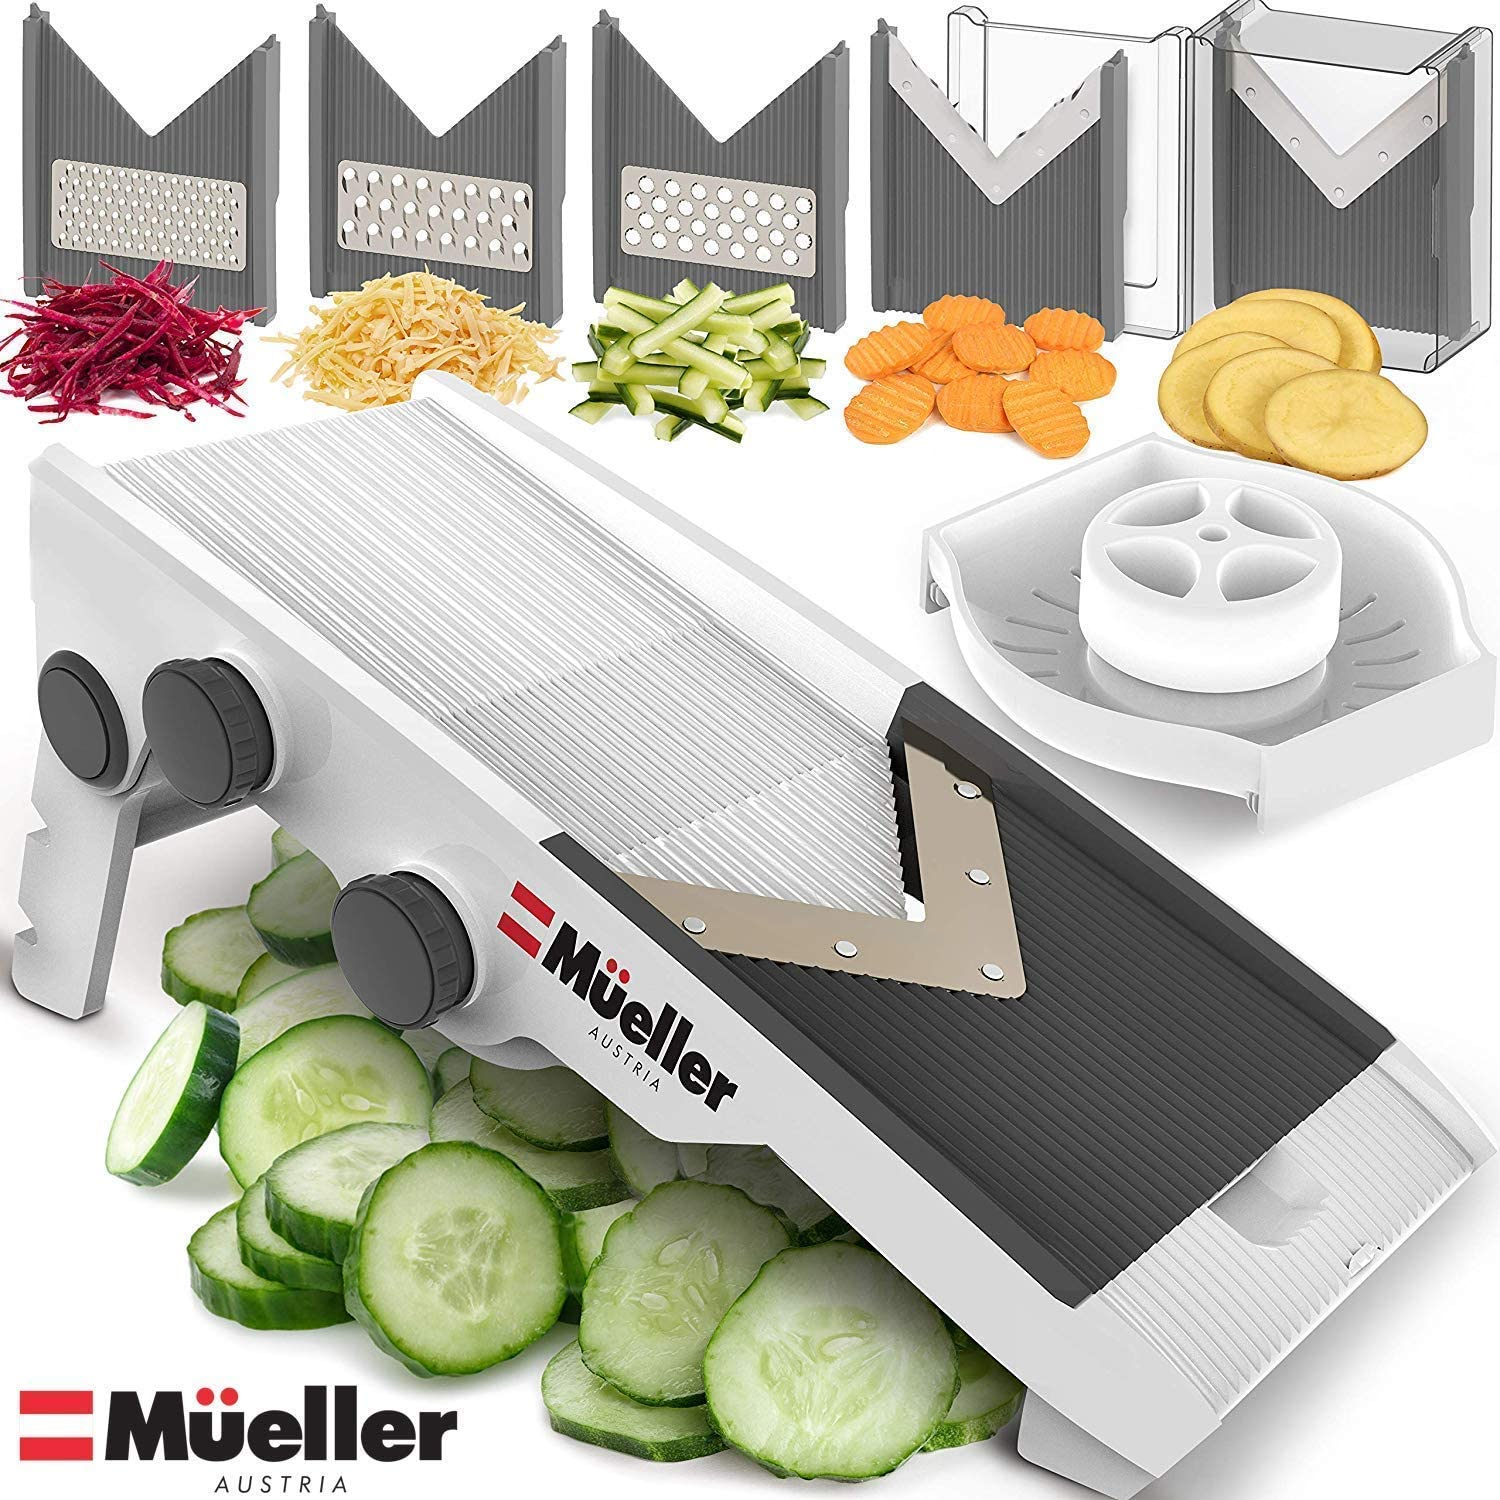 Mueller Austria Slicer, Cutter, and Shredder